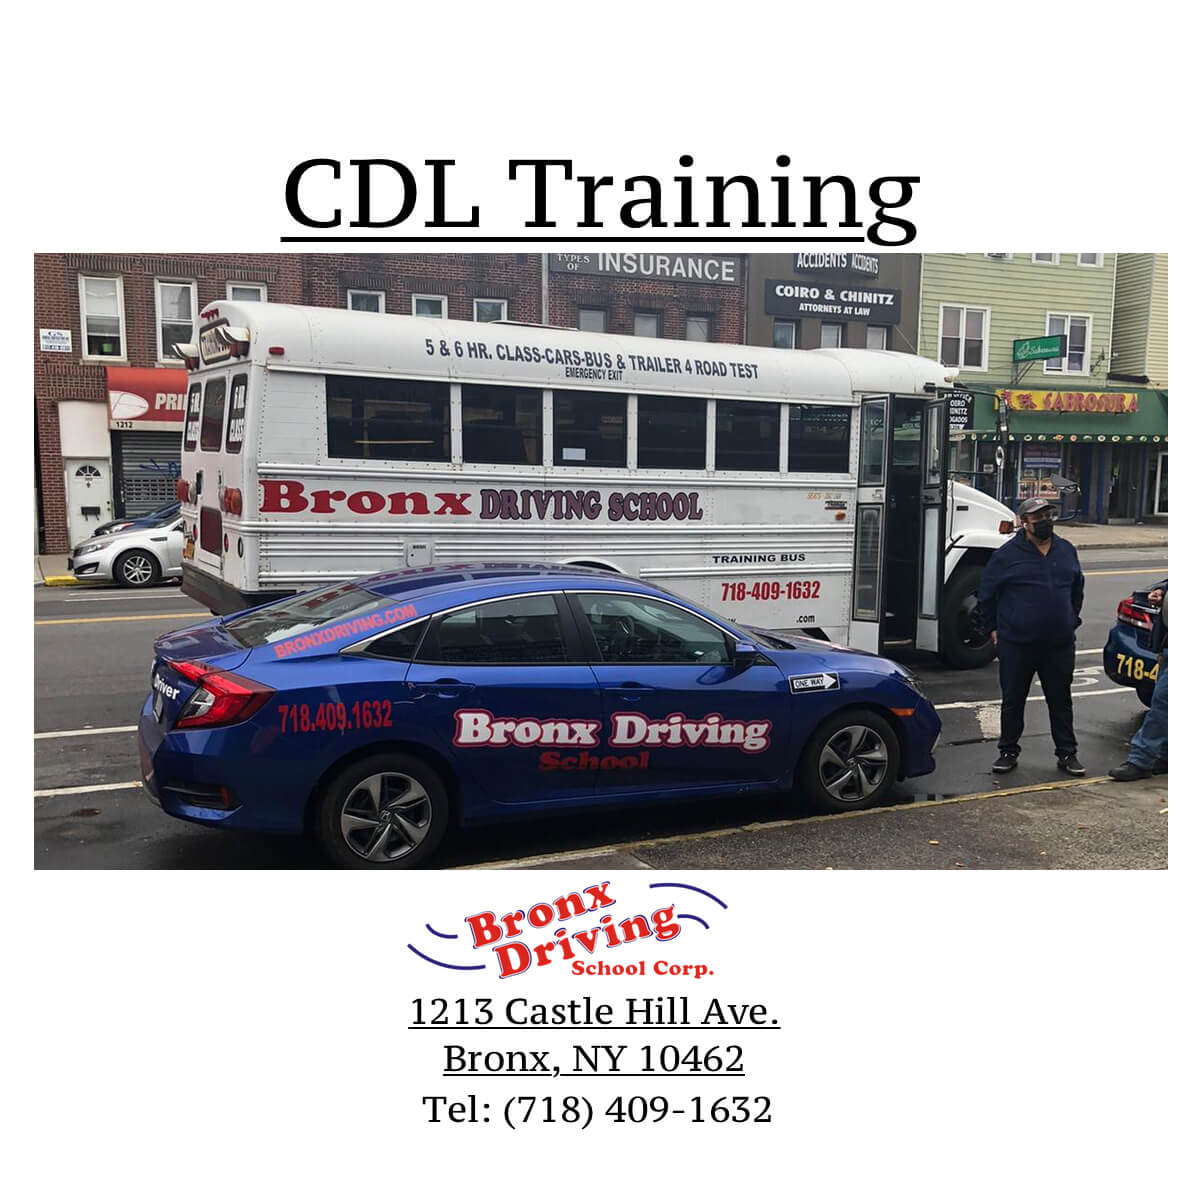 Bronx Driving School CDL Training